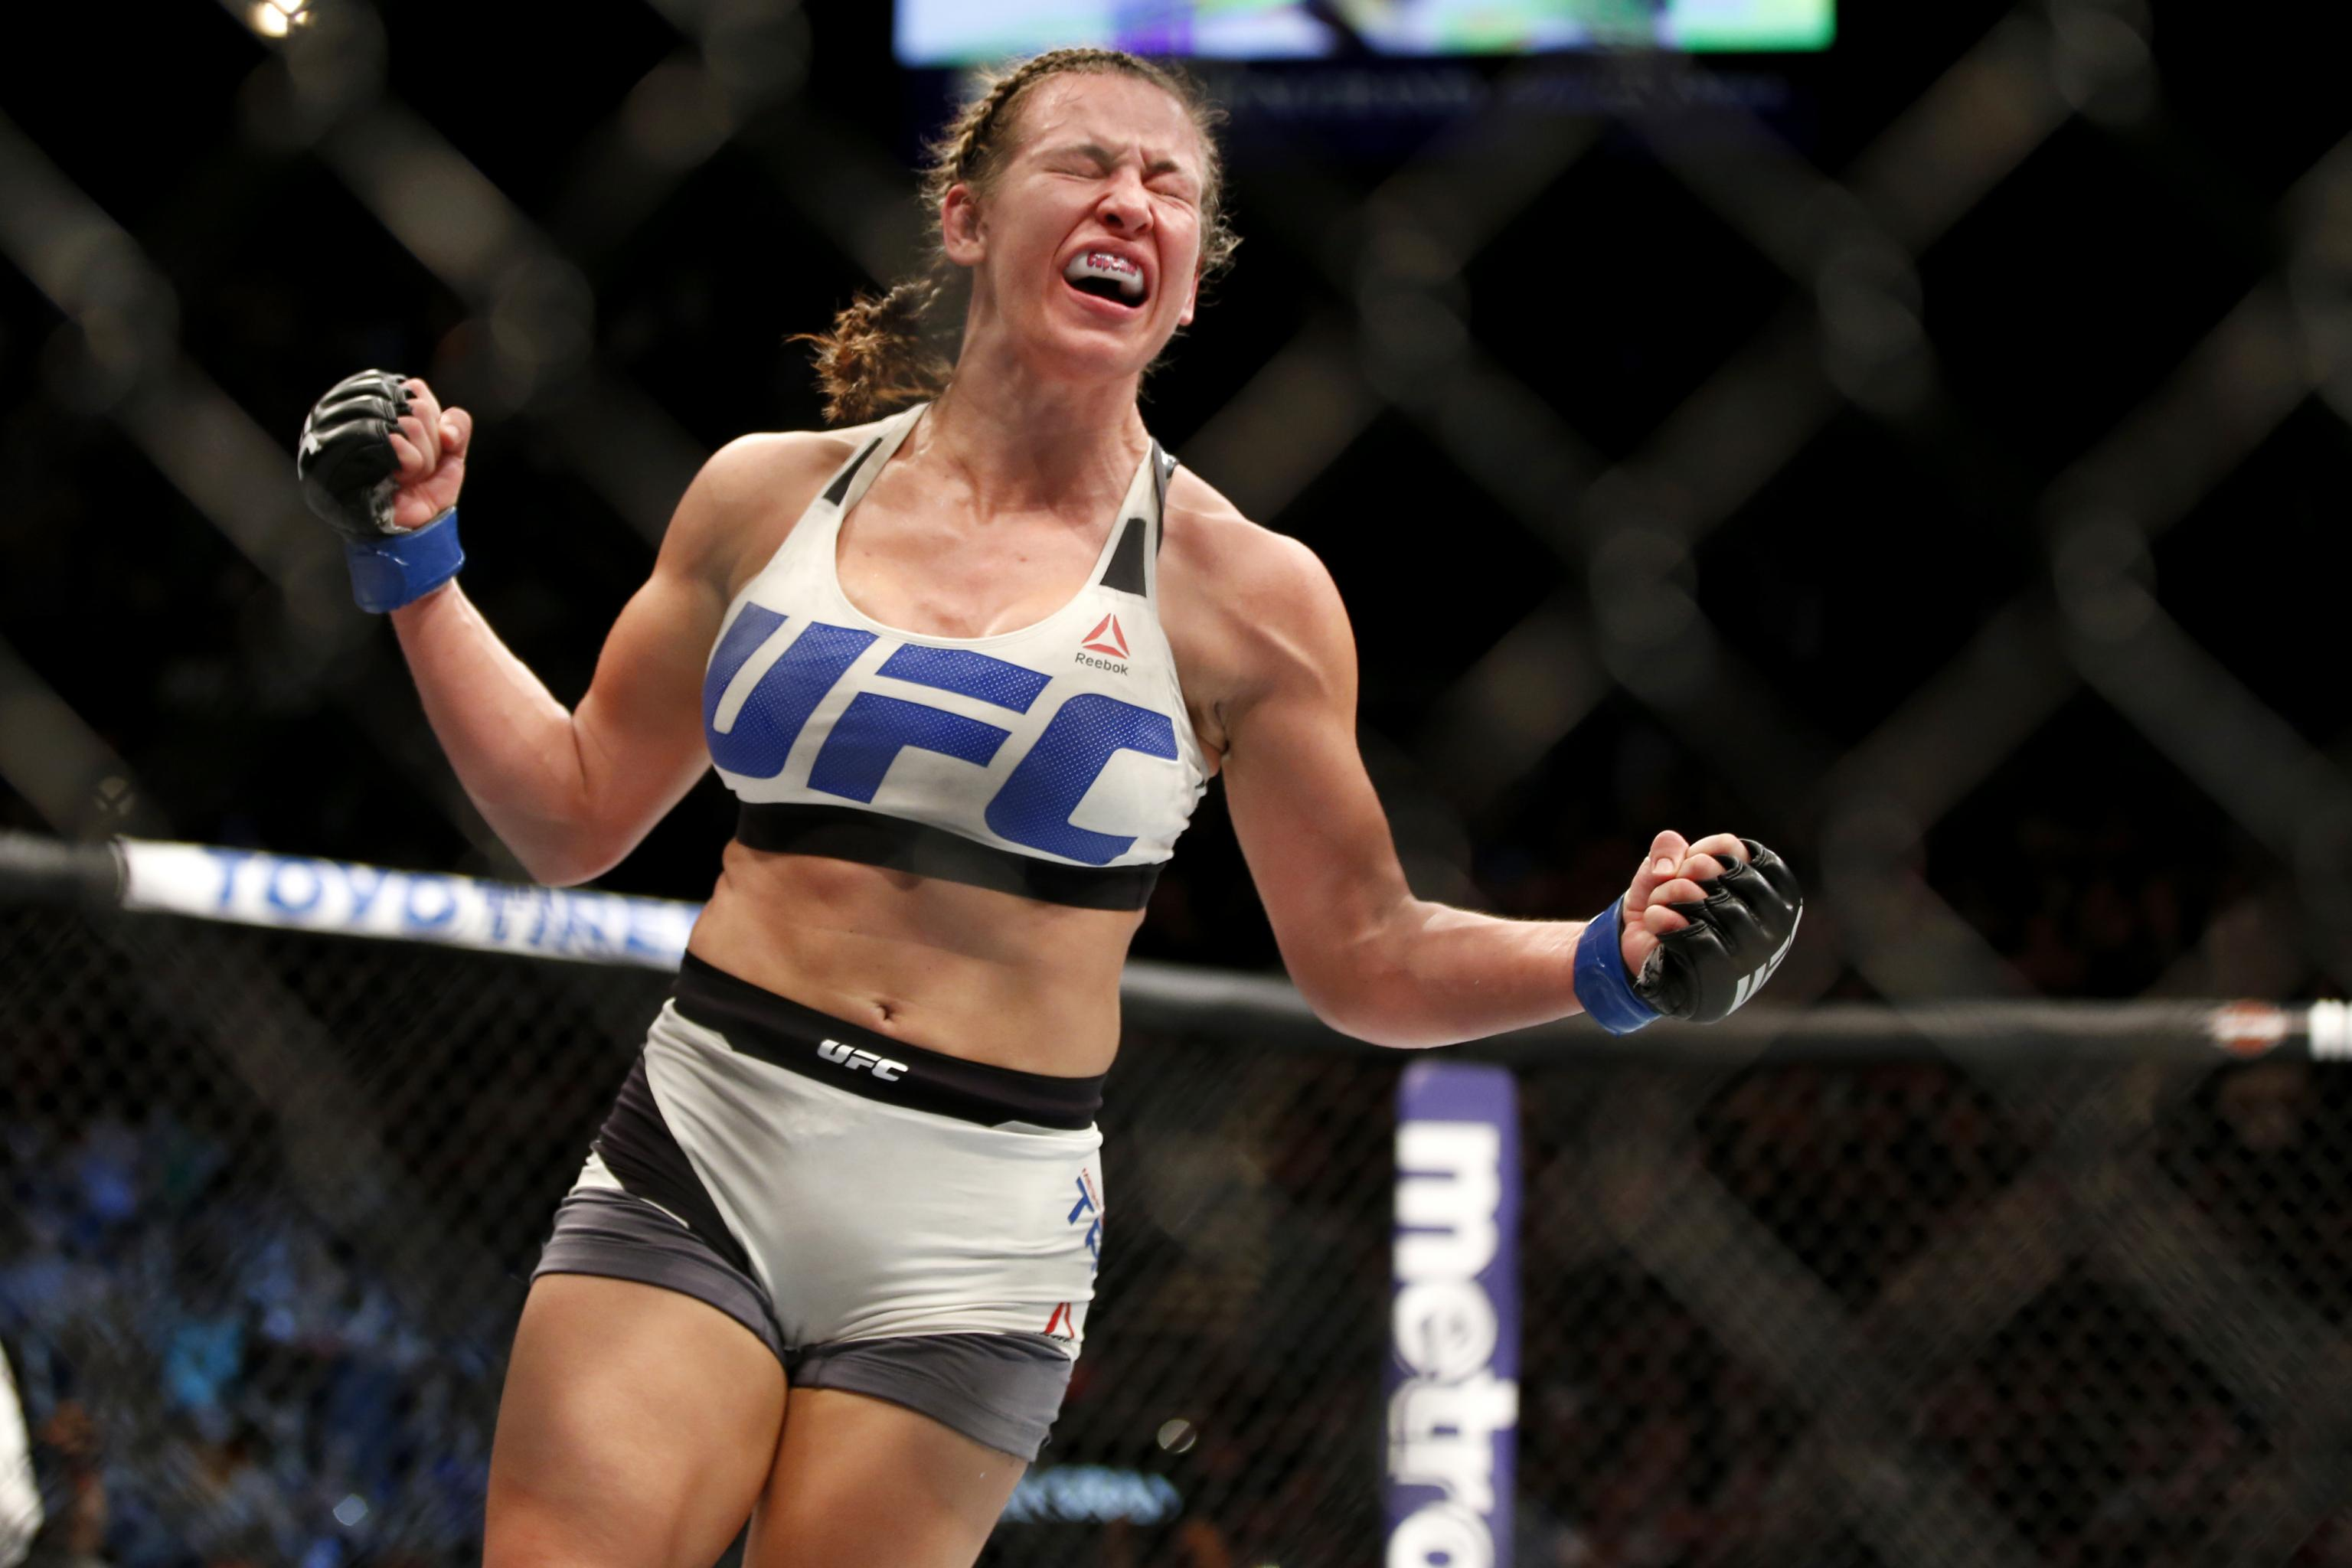 Amanda Tate miesha tate vs. amanda nunes announced for ufc 200: latest